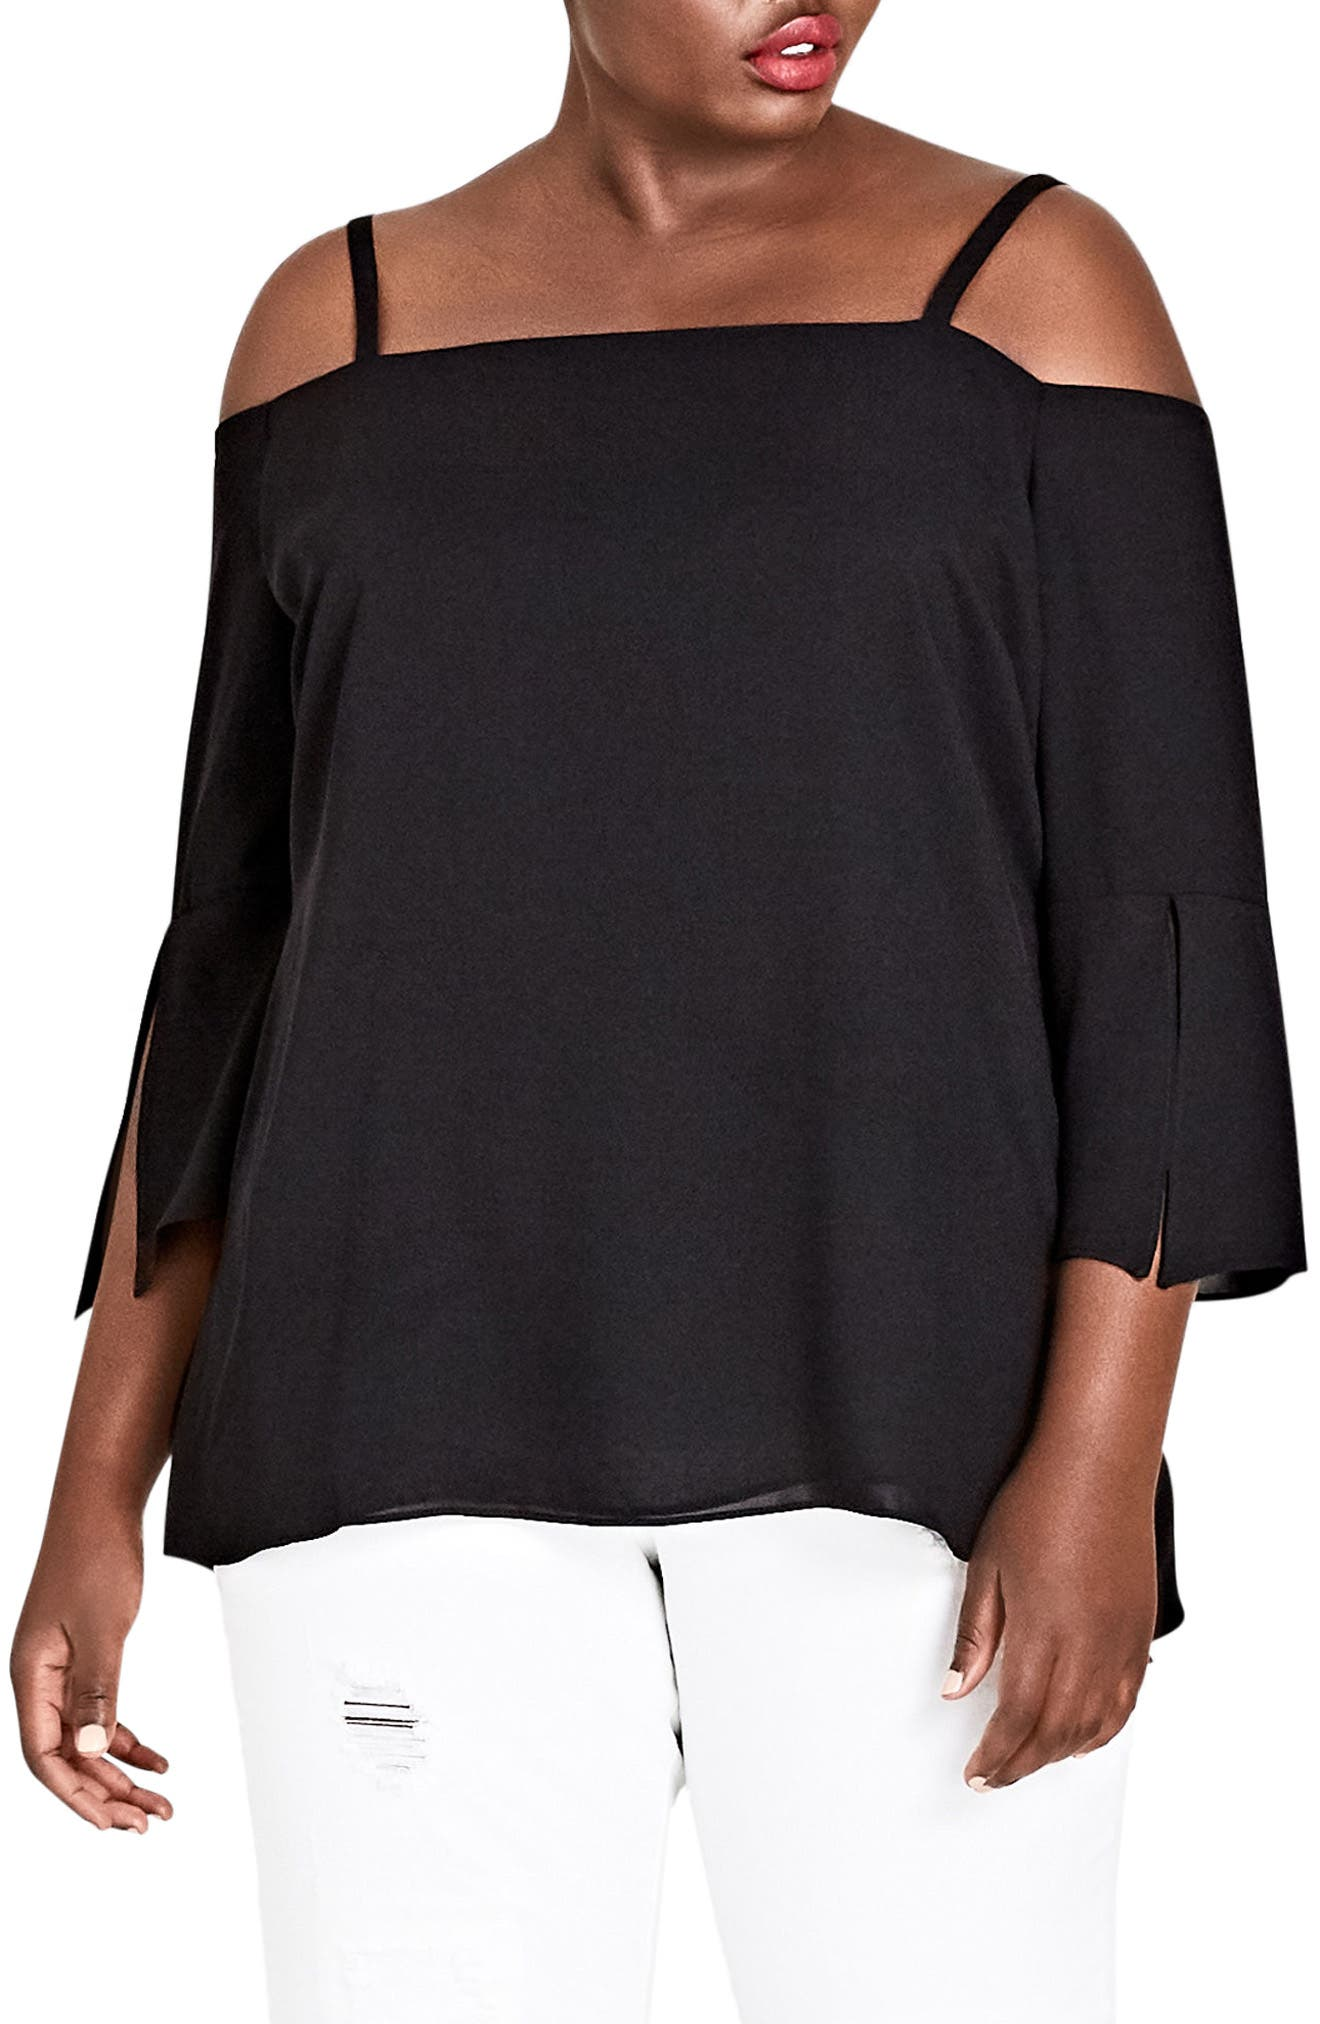 Alternate Image 1 Selected - City Chic Split Sleeve Off the Shoulder Top (Plus Size)